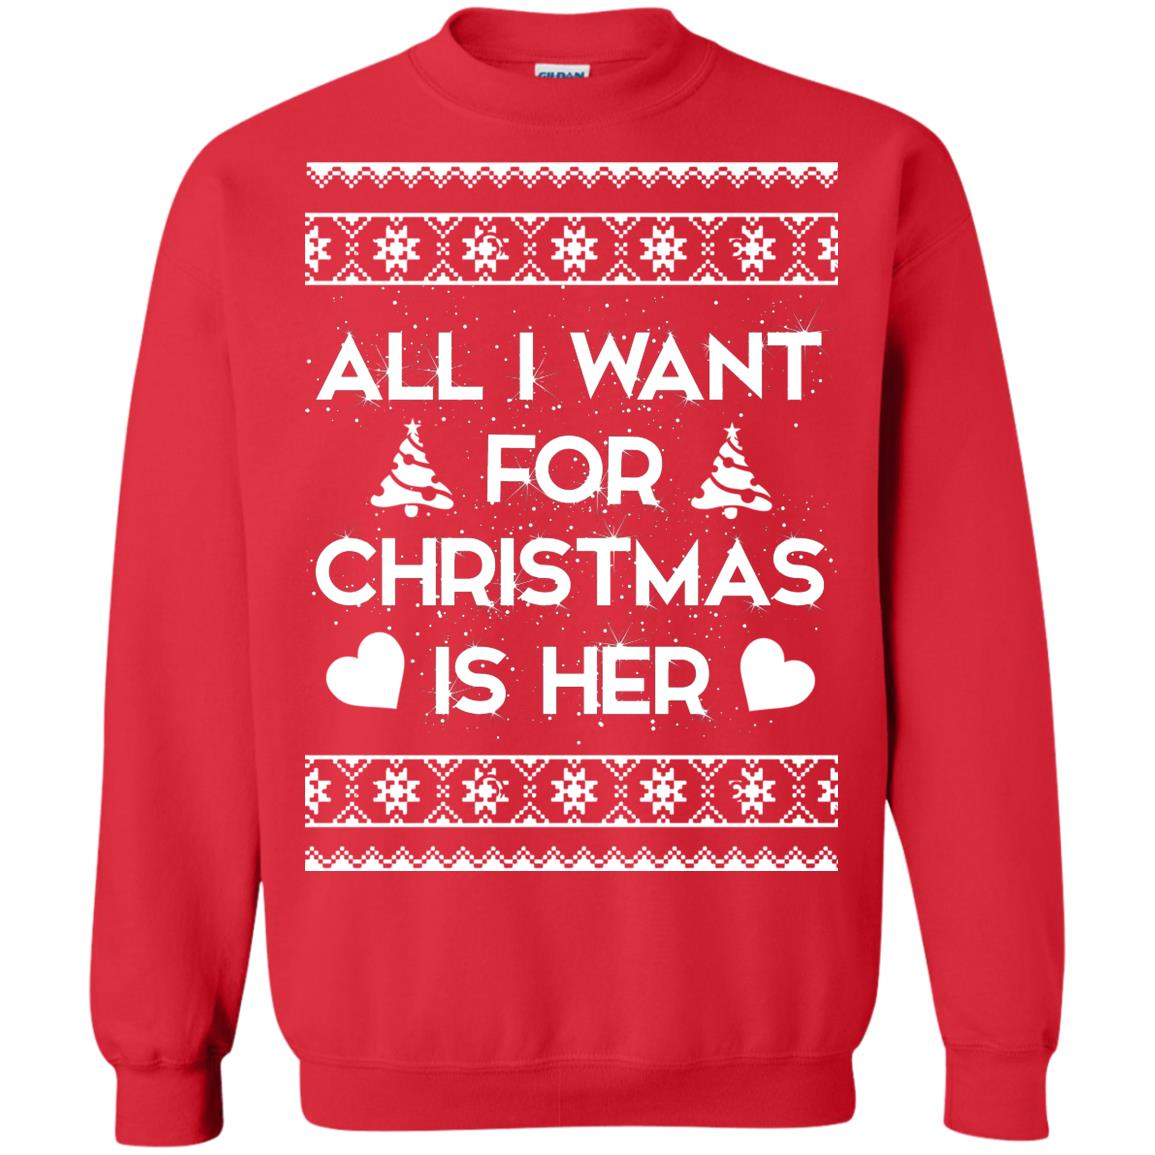 image 2391 - Couple Sweatshirt: All I Want For Christmas Is Her ugly Sweater, Shirt